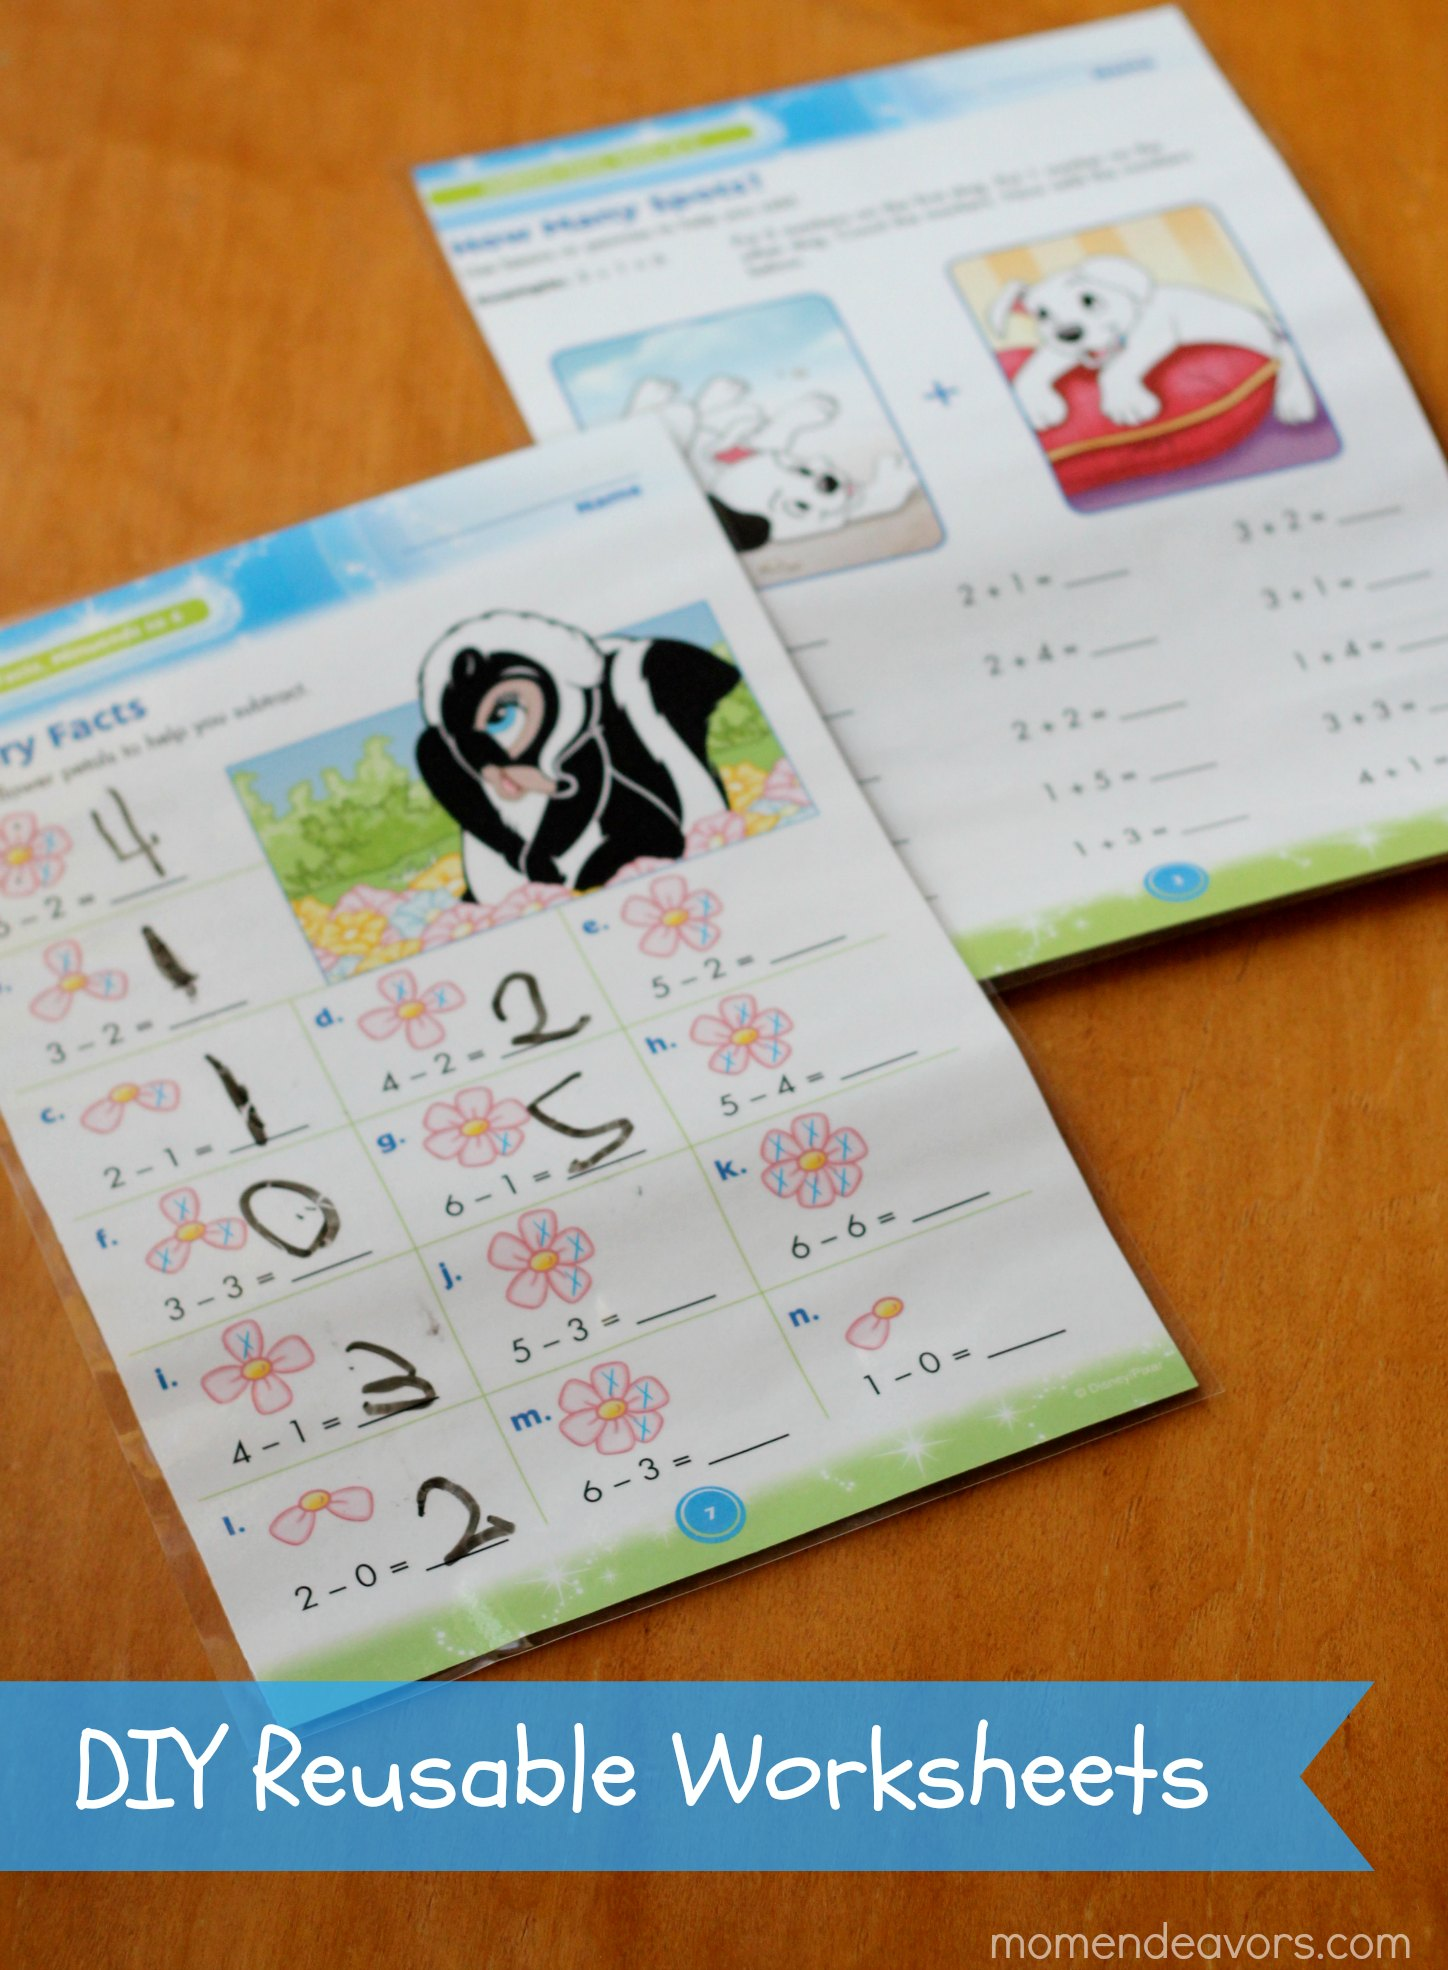 DIY Reusable Worksheets